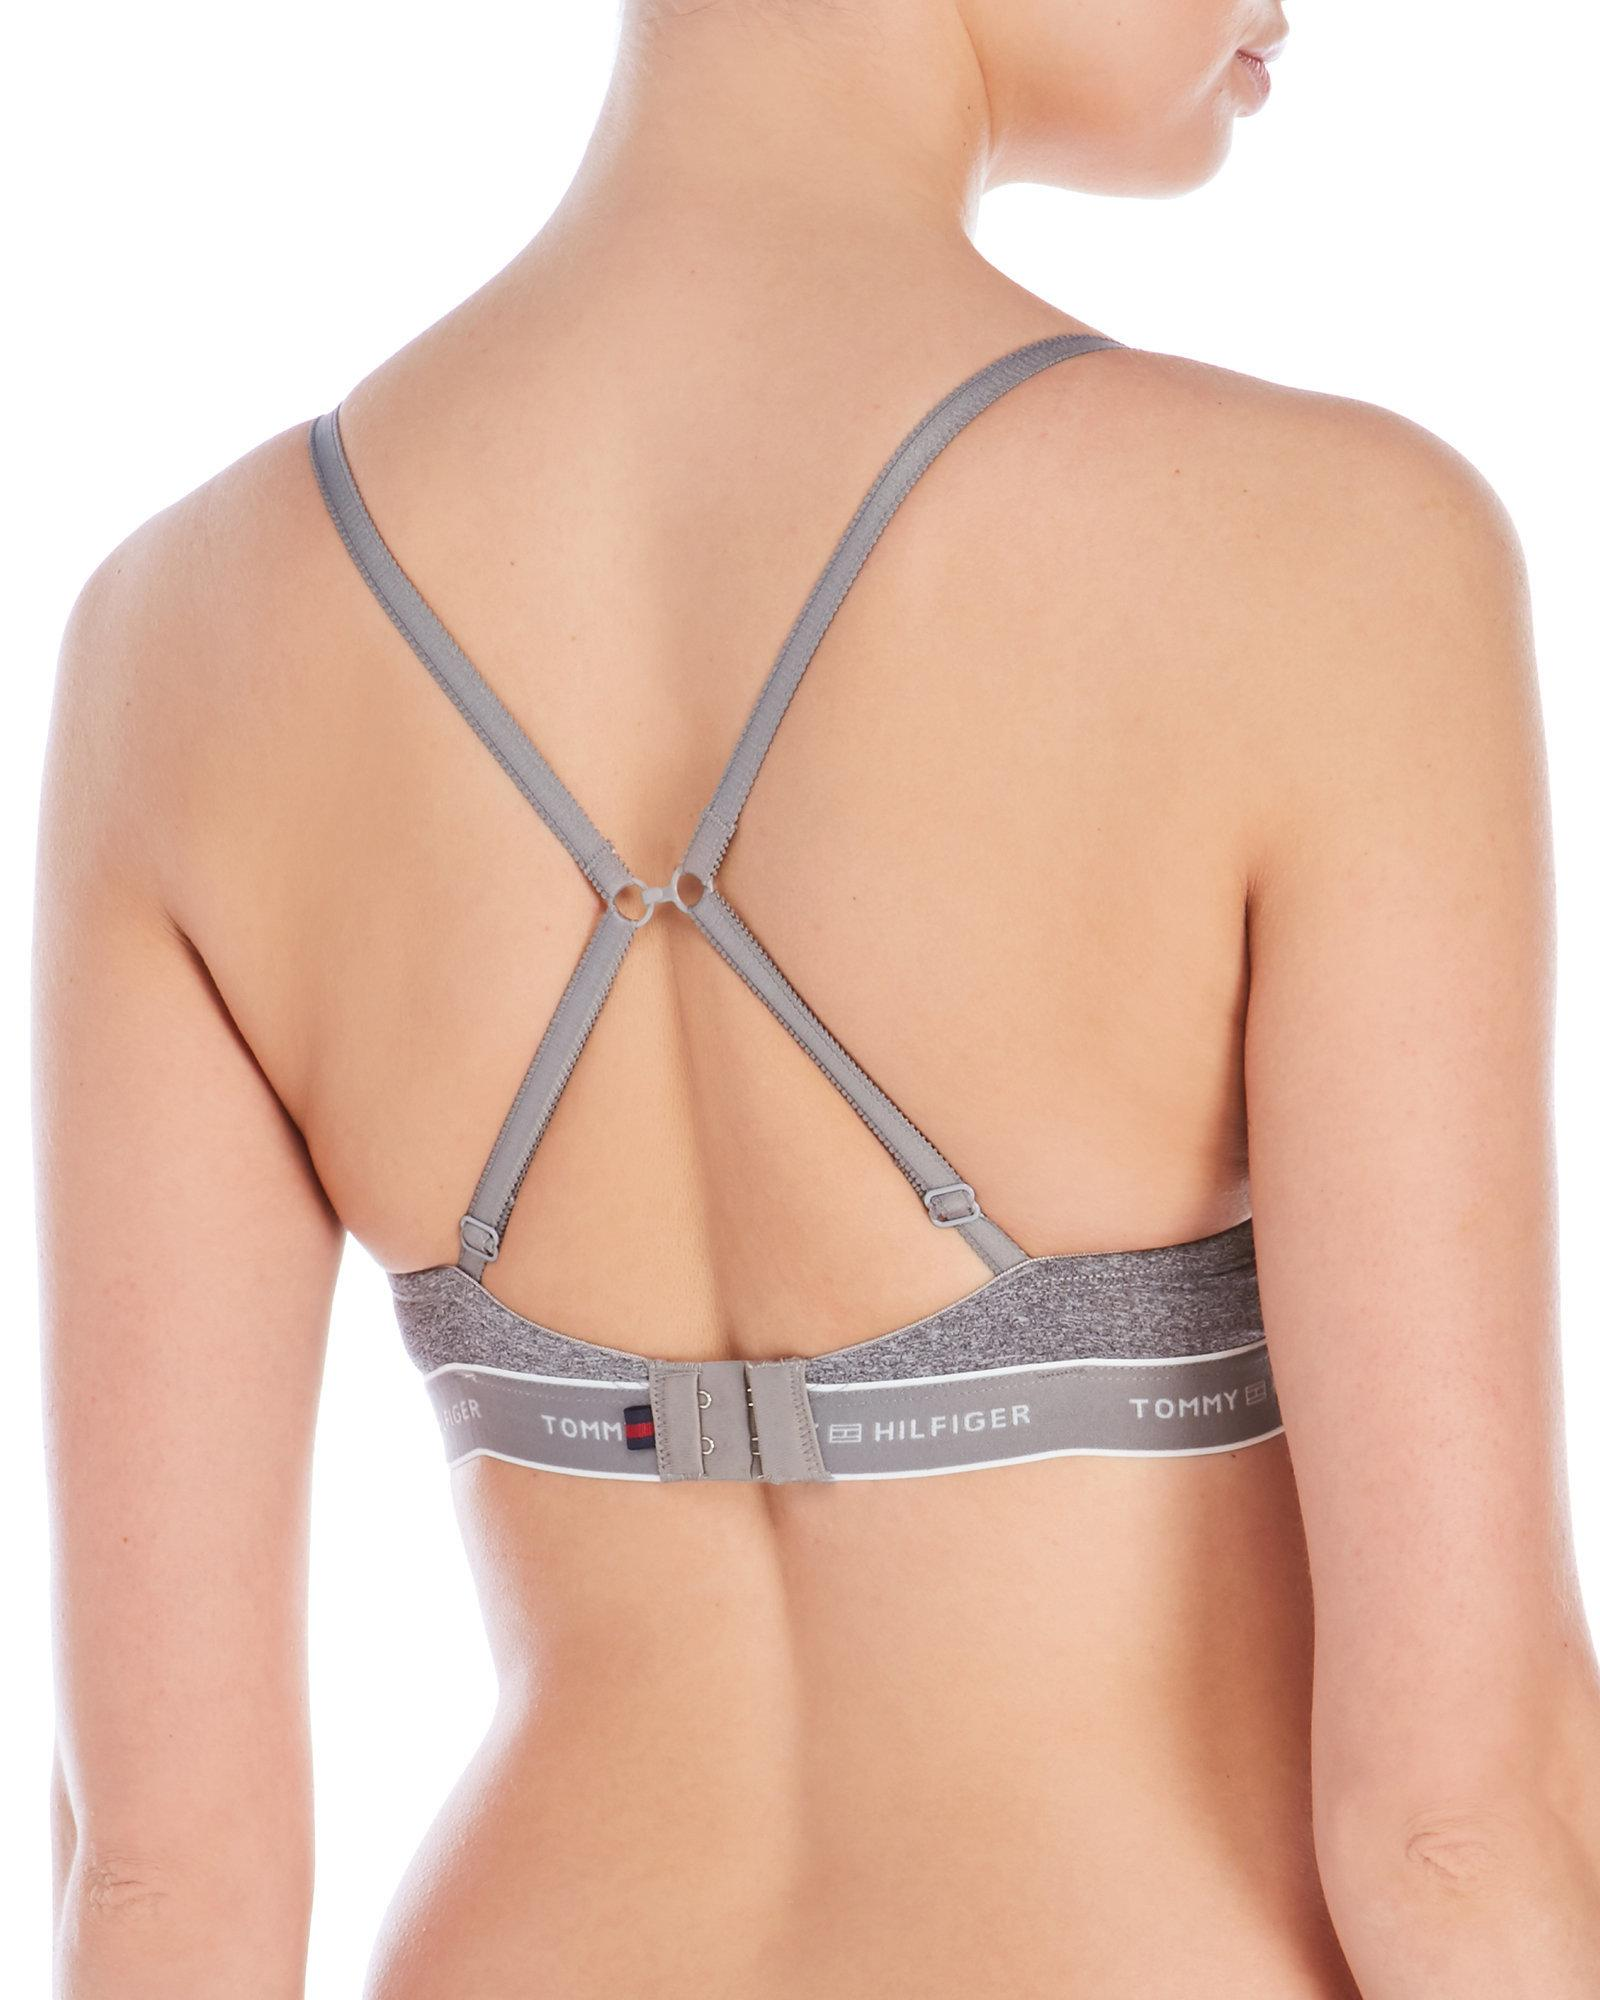 Tommy Hilfiger Gray Micro Push-Up Bra With Logo Band